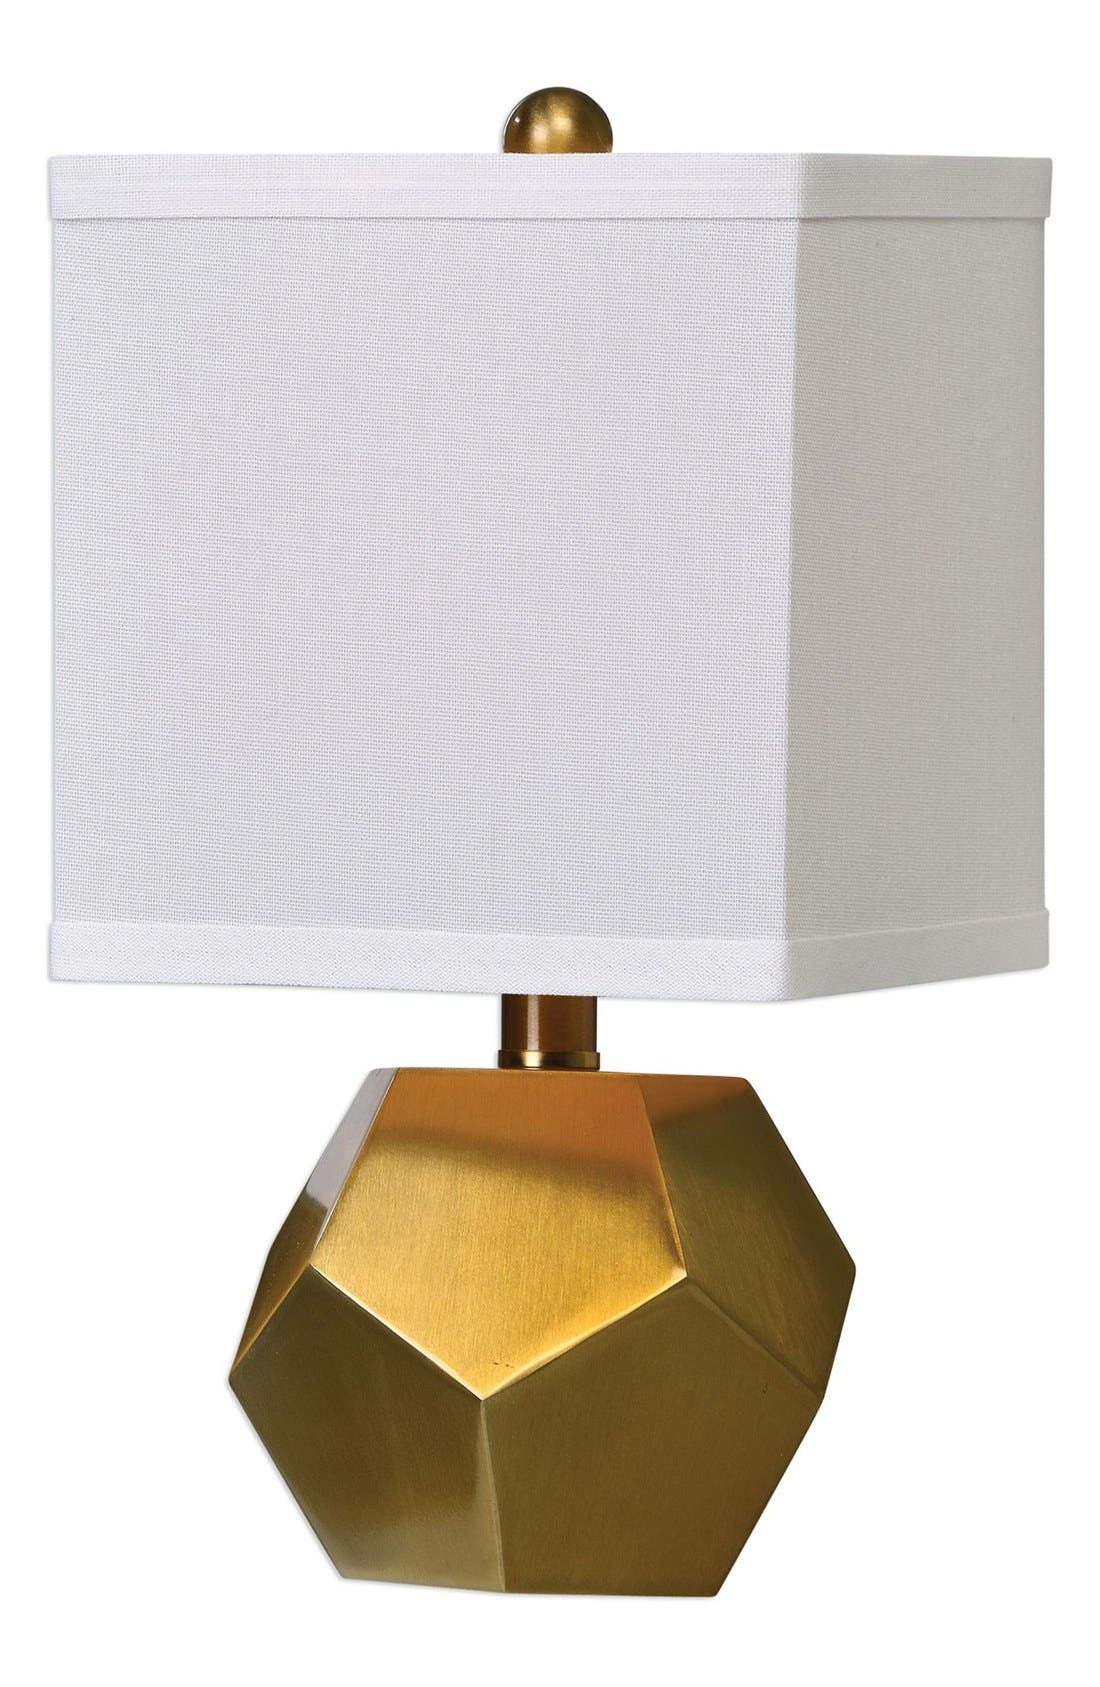 Main Image - Uttermost 'Geo Cube' Lamps (Set of 2)